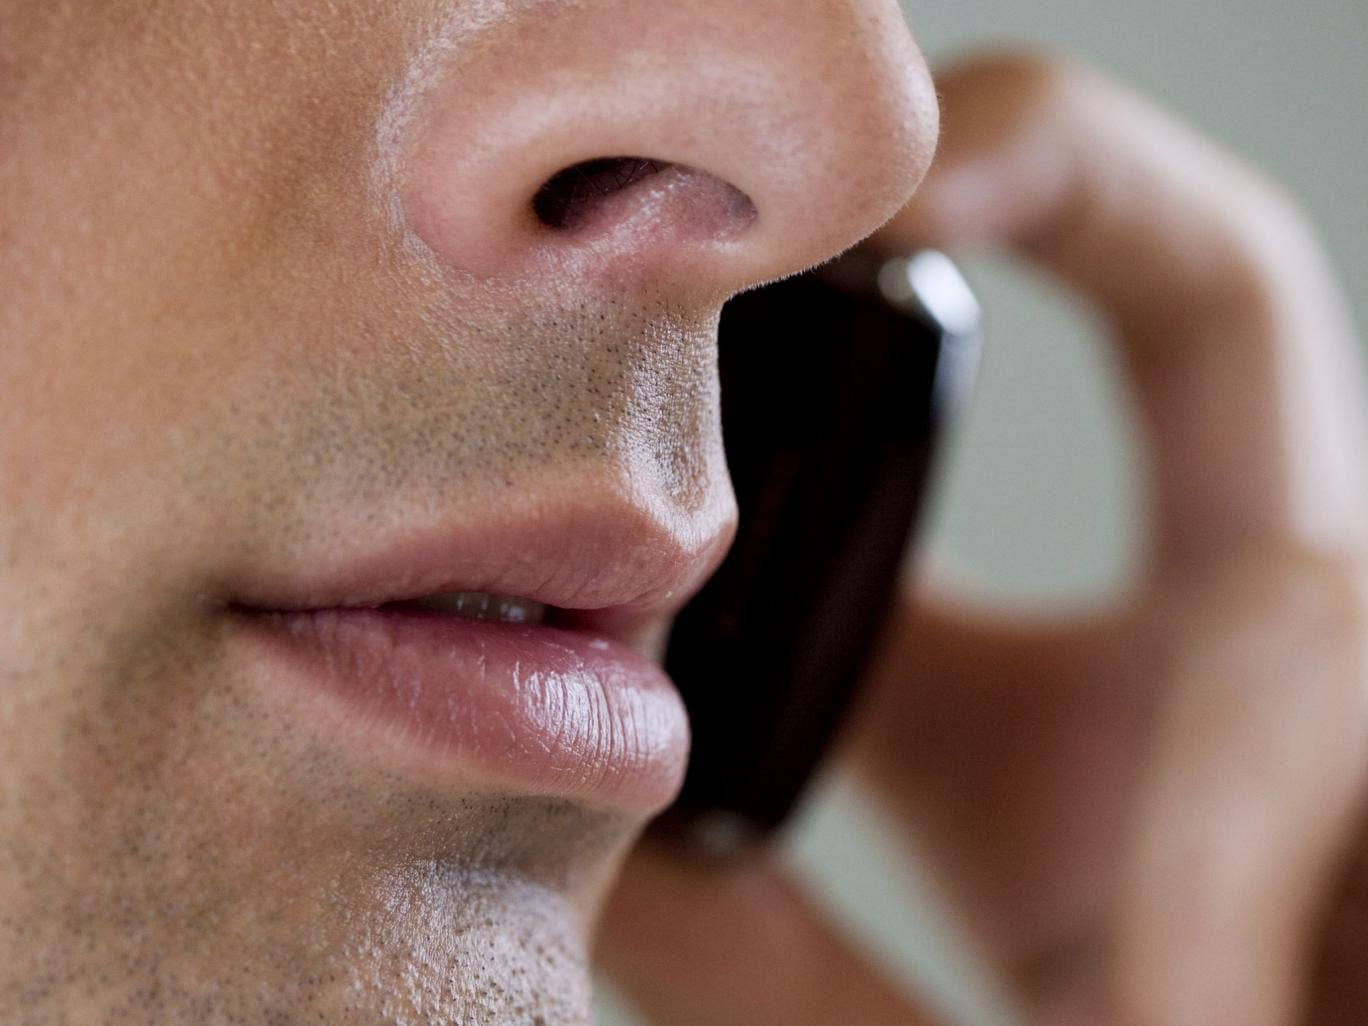 Hearing-impaired Californian residents were redirected to a sex-chat hotline